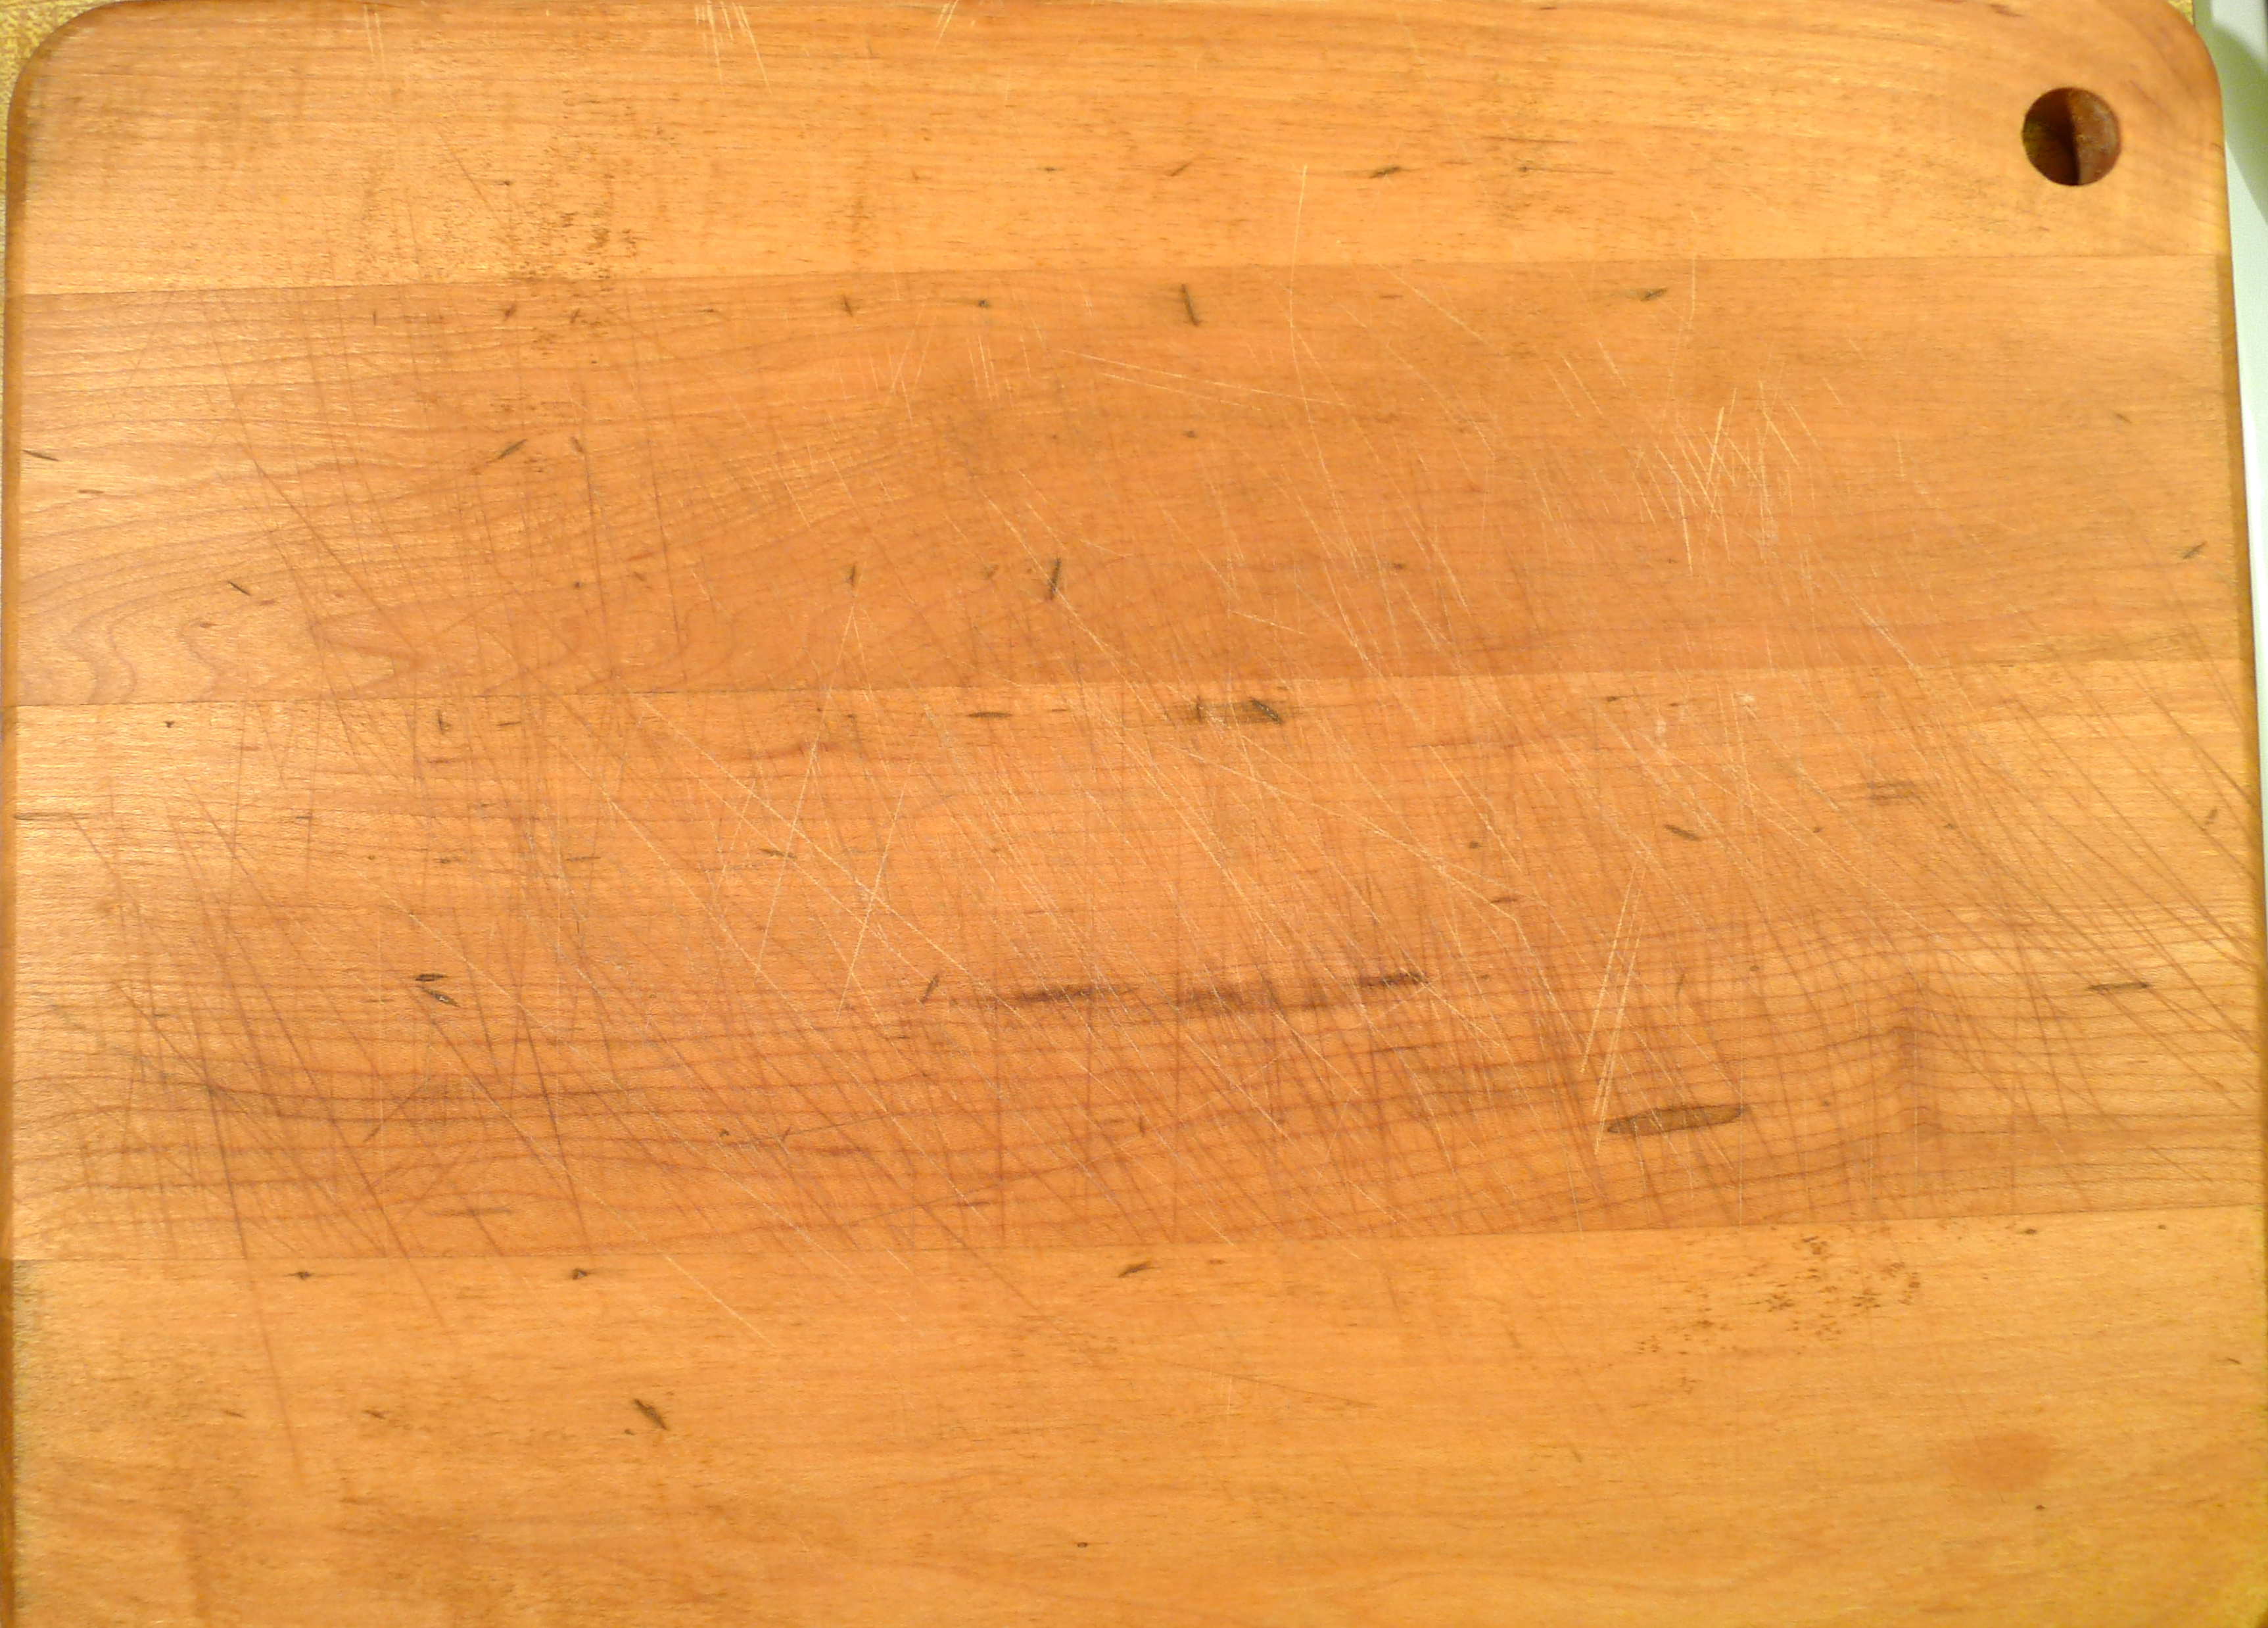 Diy chopping block cutting boards wooden pdf build your